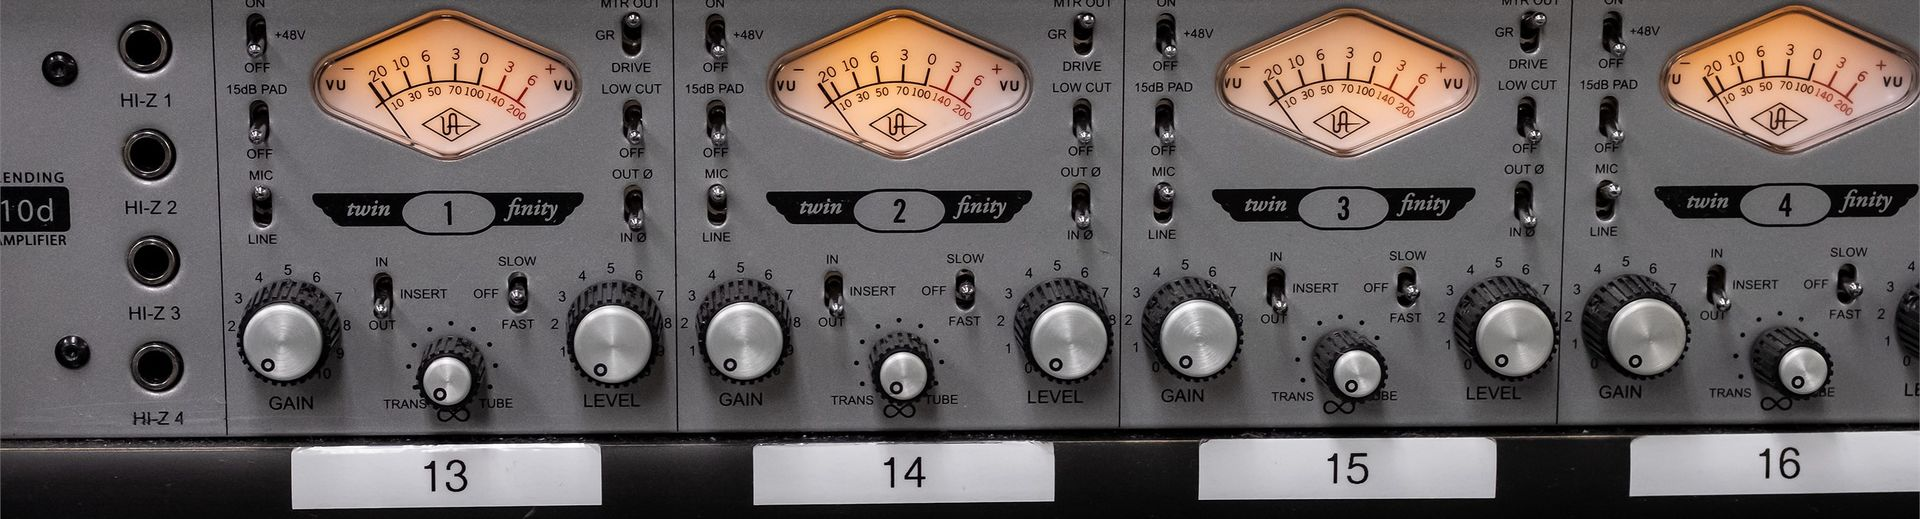 Knobs and dials of a music sound board.